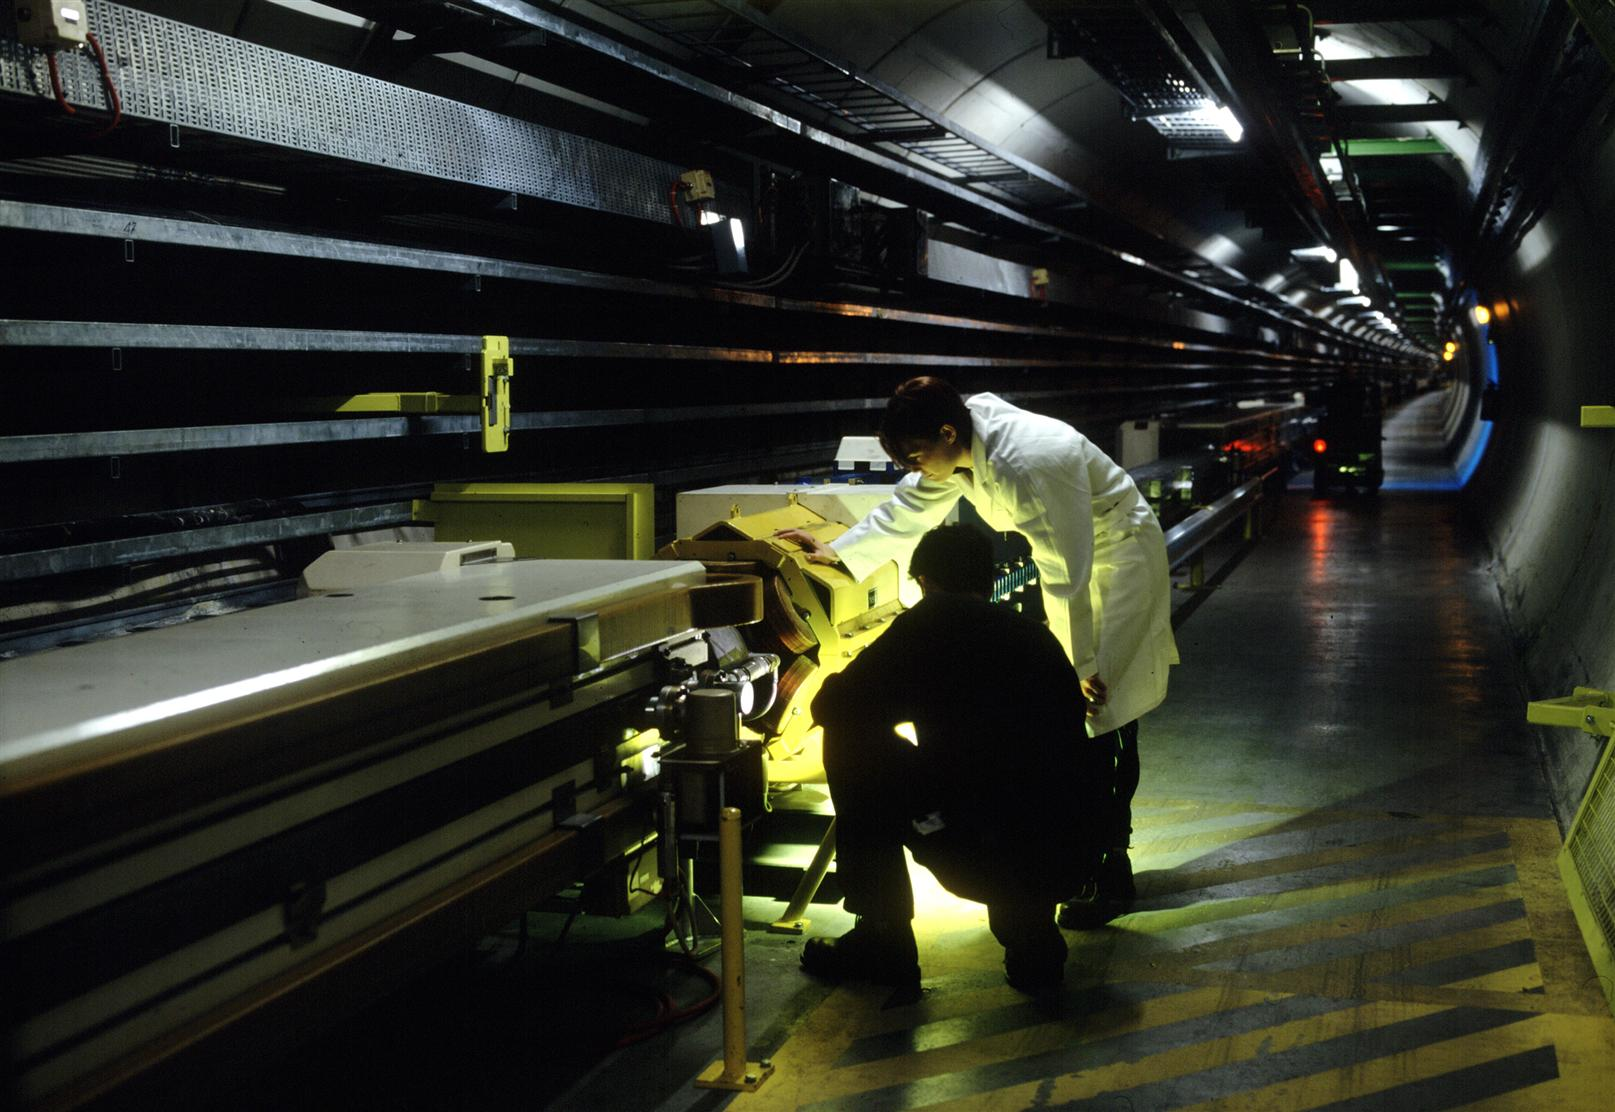 At work on LEP, the world's most powerful electron–positron collider